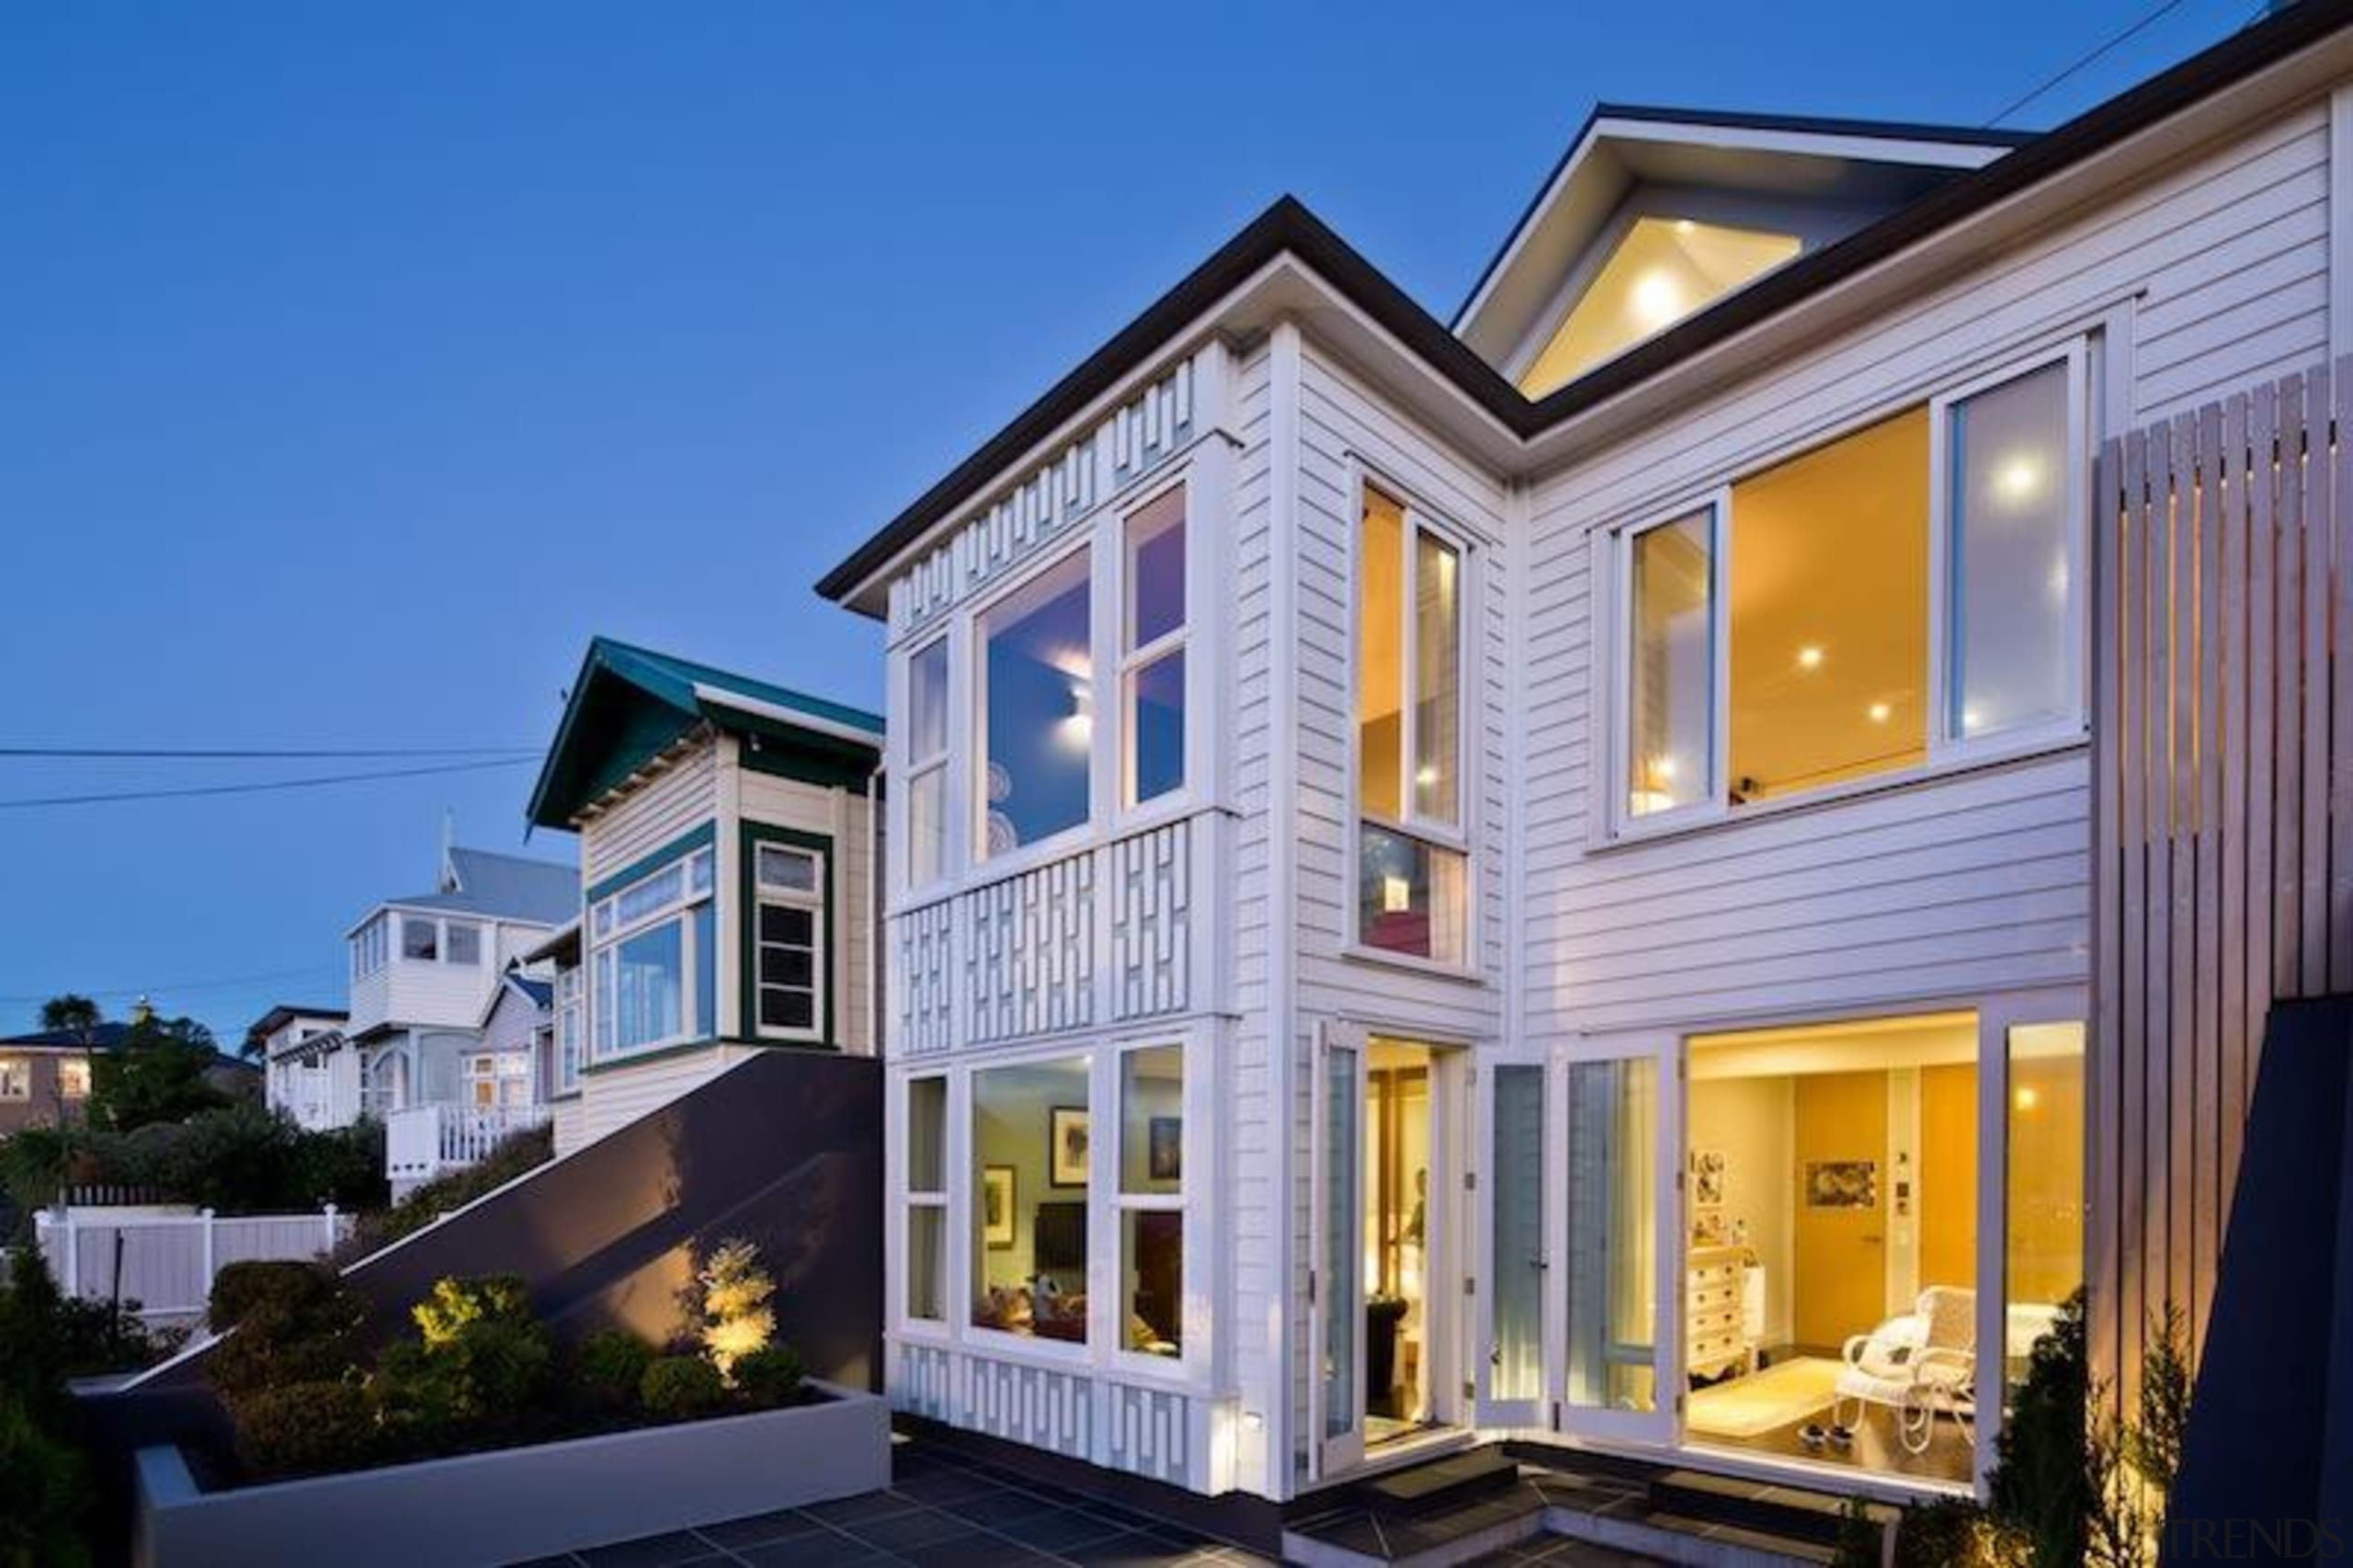 TIDA New Zealand Architect-designed Homes - 2015 Trends building, elevation, estate, facade, home, house, mixed use, property, real estate, residential area, siding, window, blue